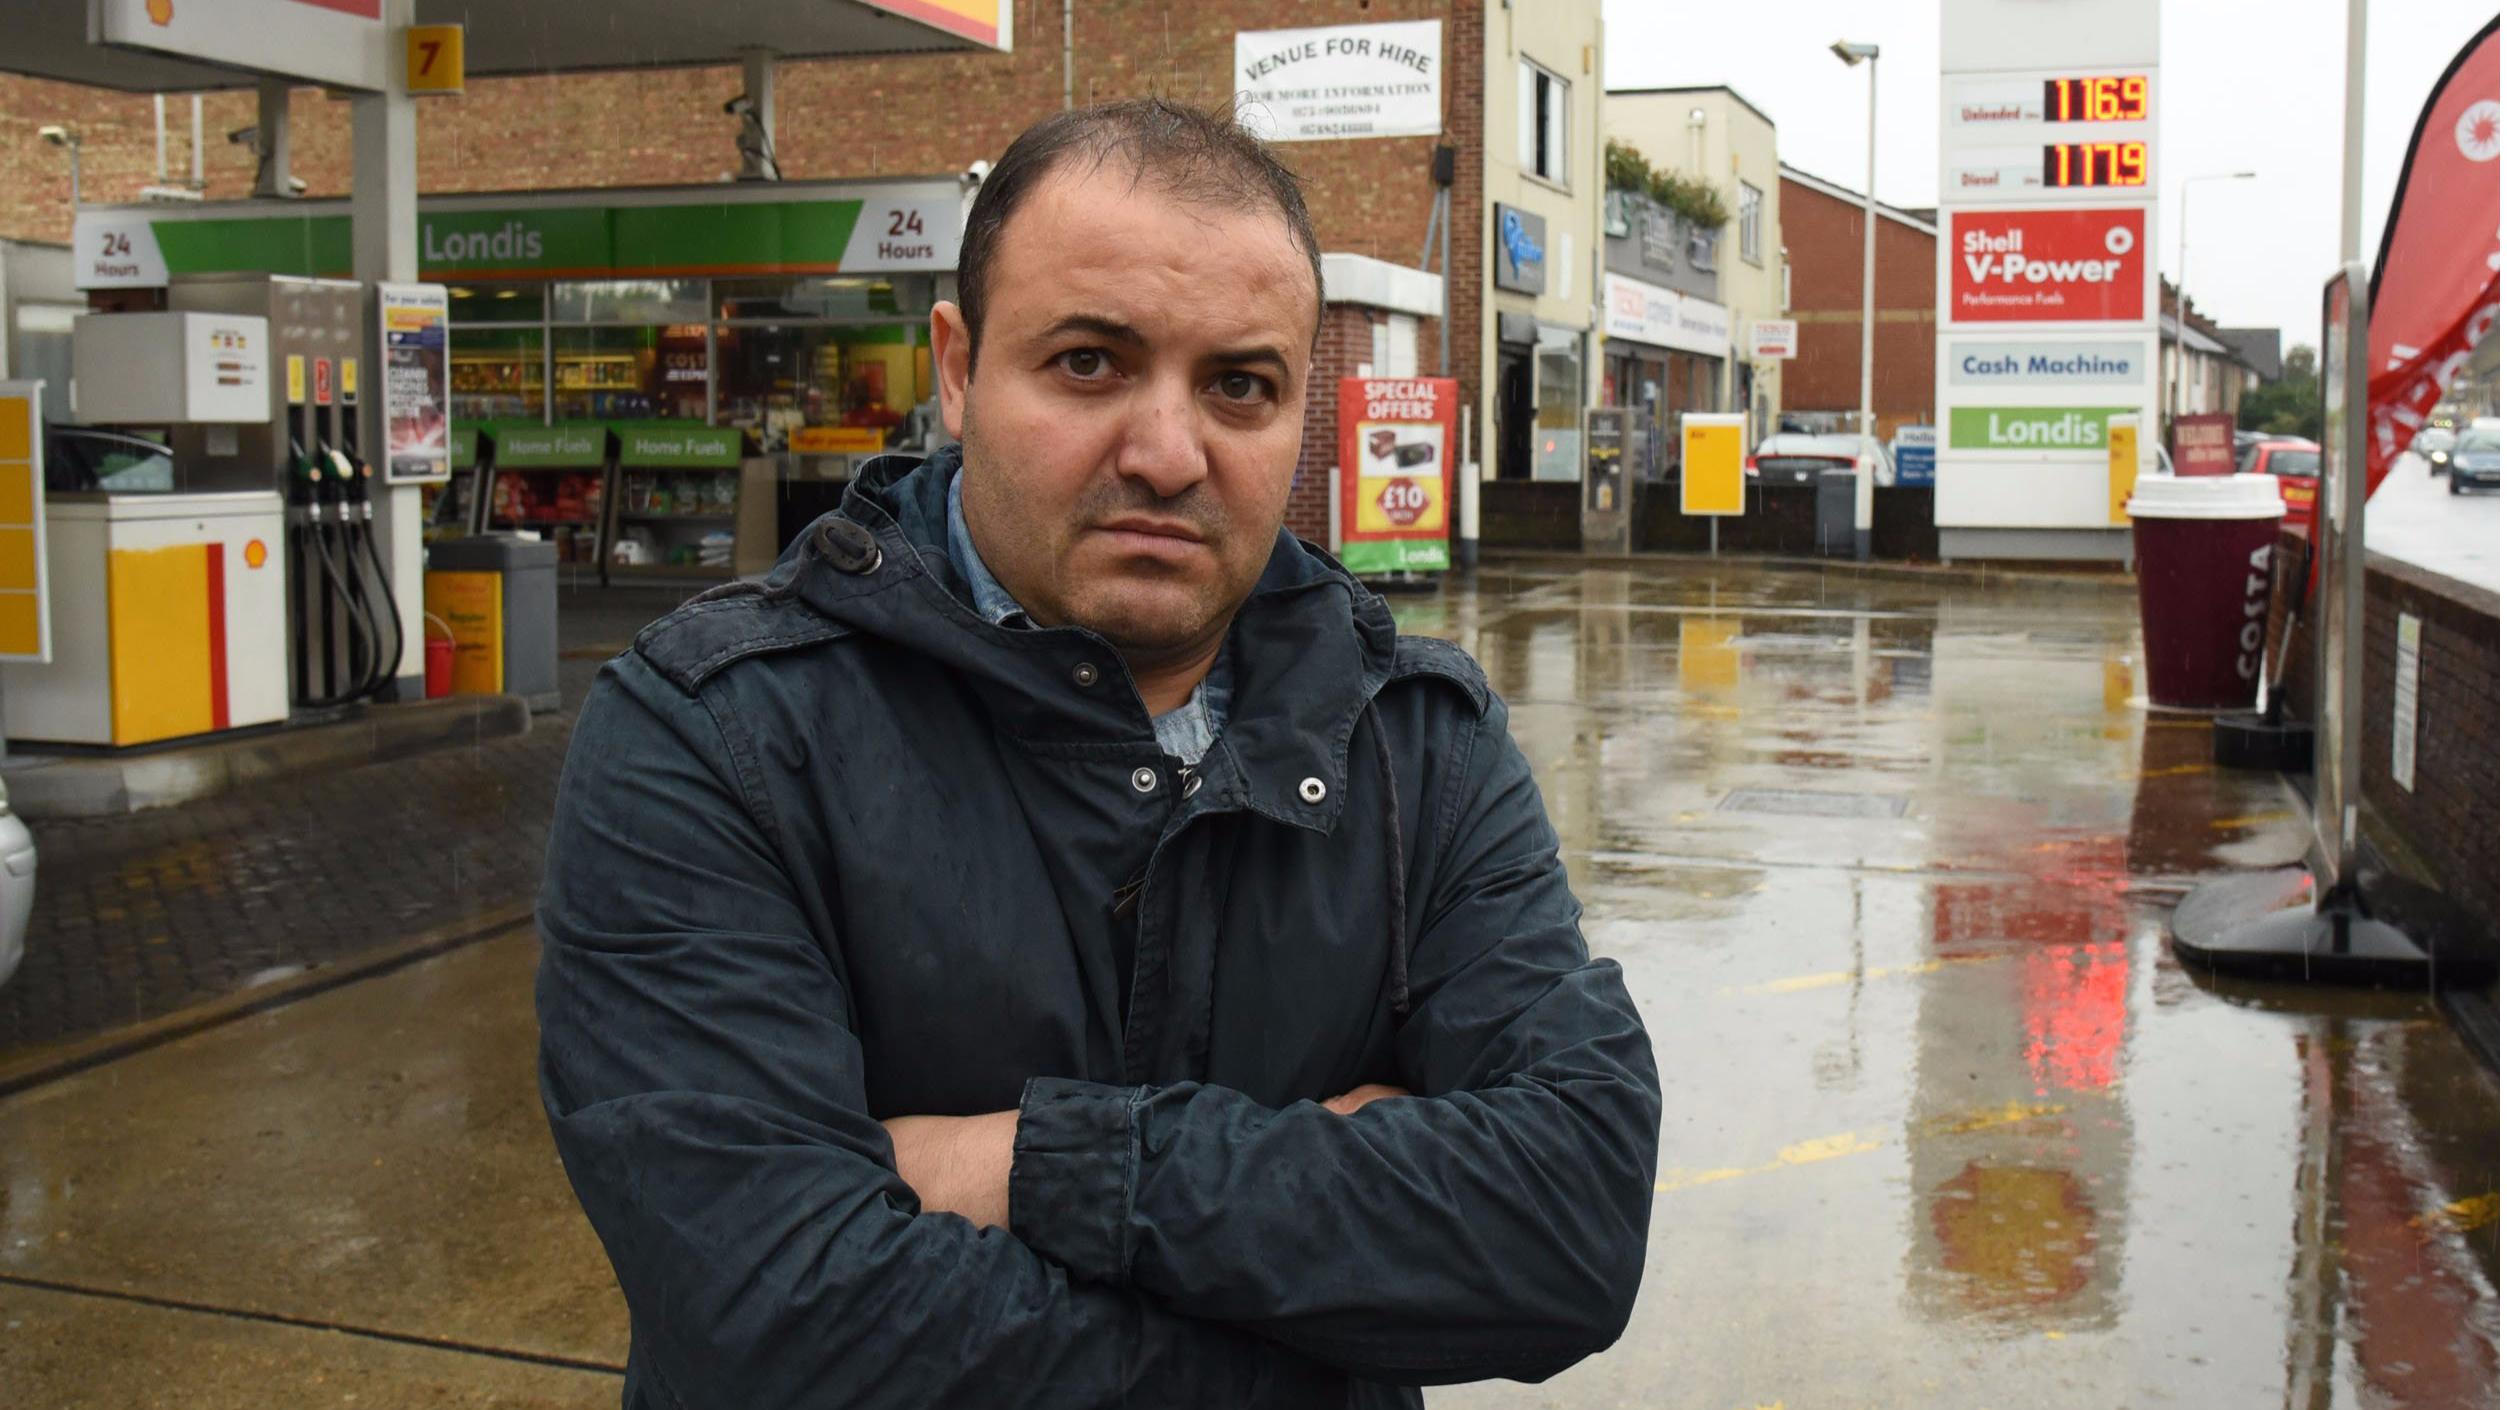 Driver Outraged After Receiving Parking Ticket While Paying For Fuel